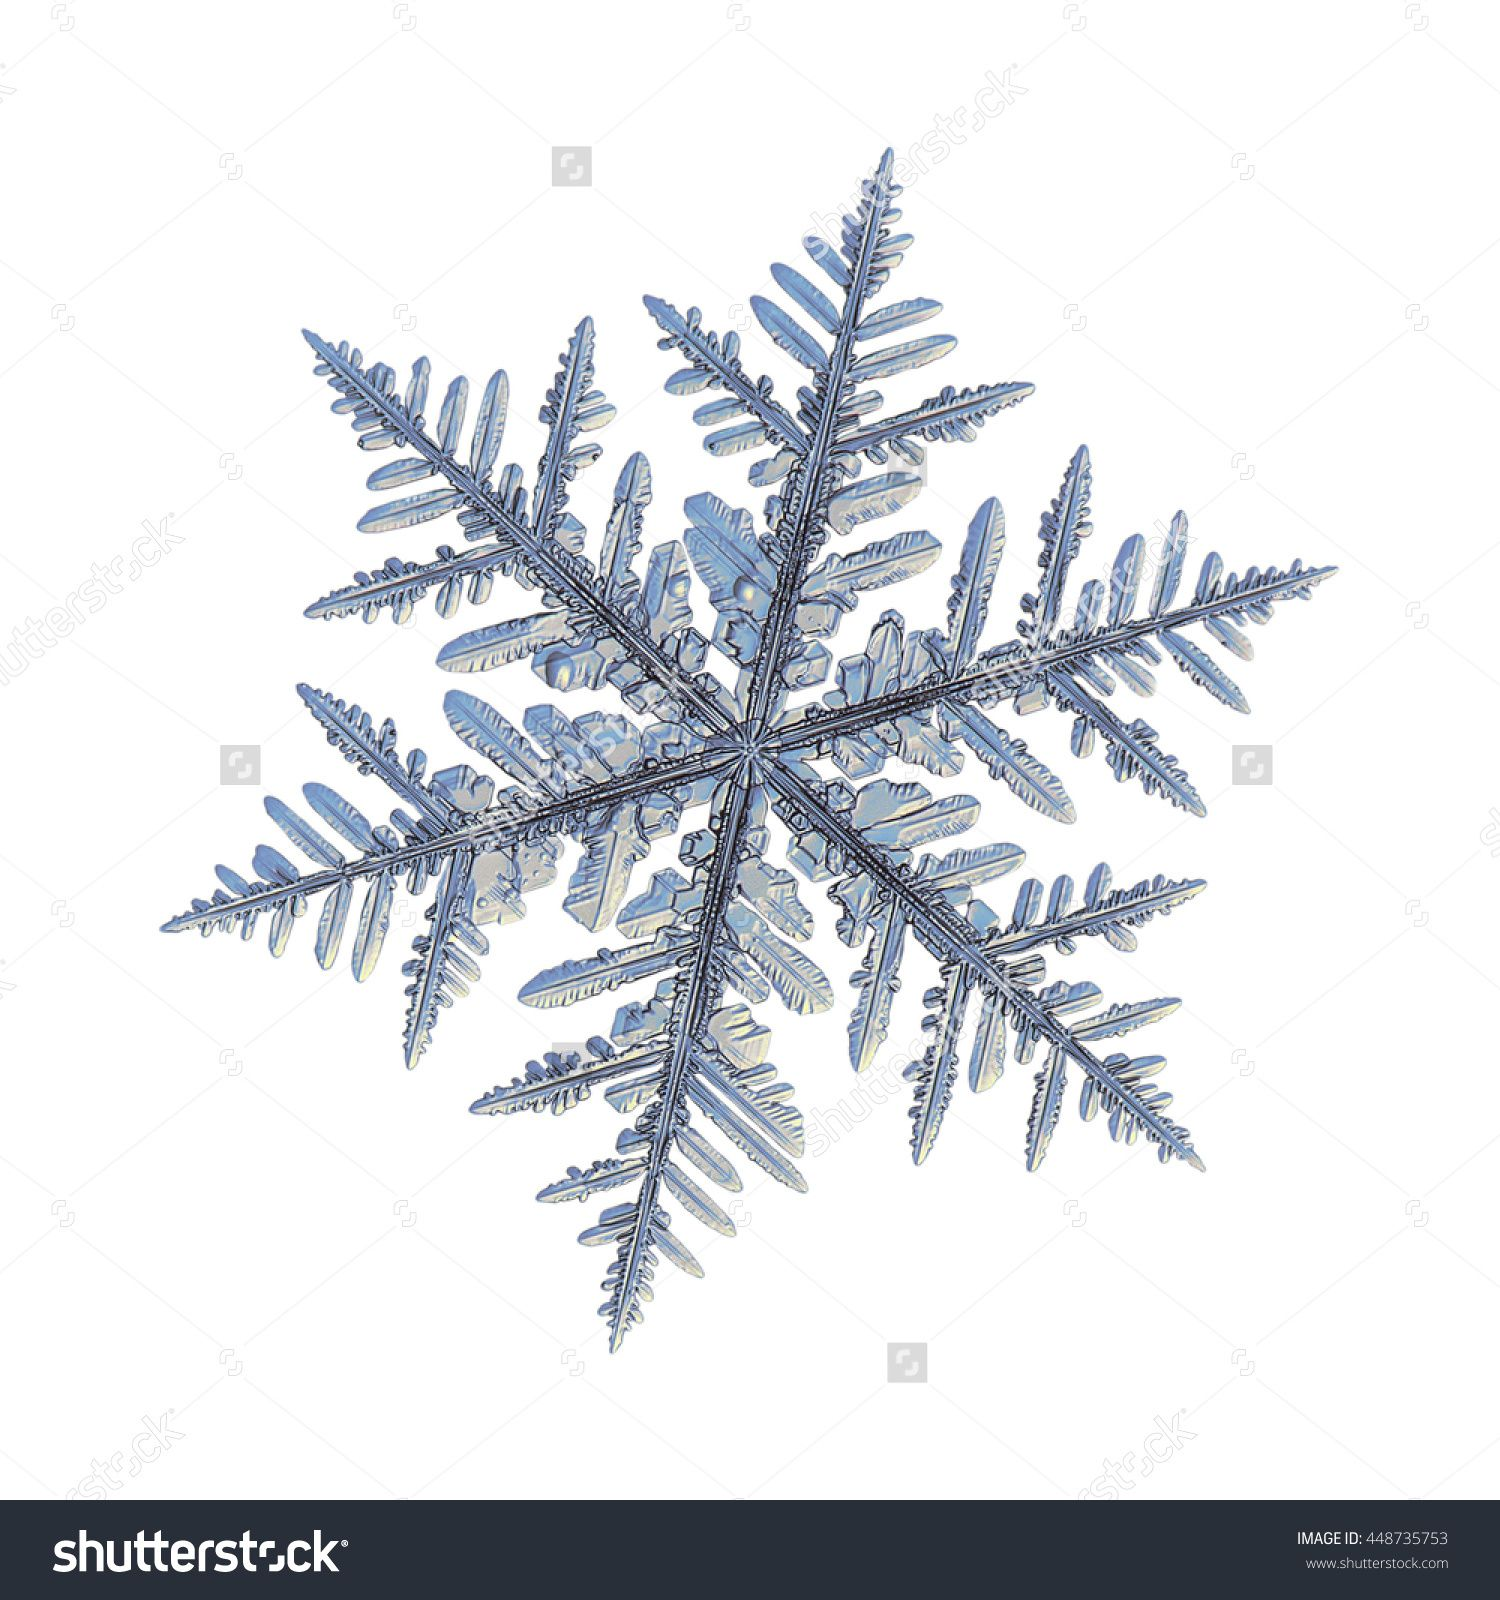 real snowflakes background - photo #39